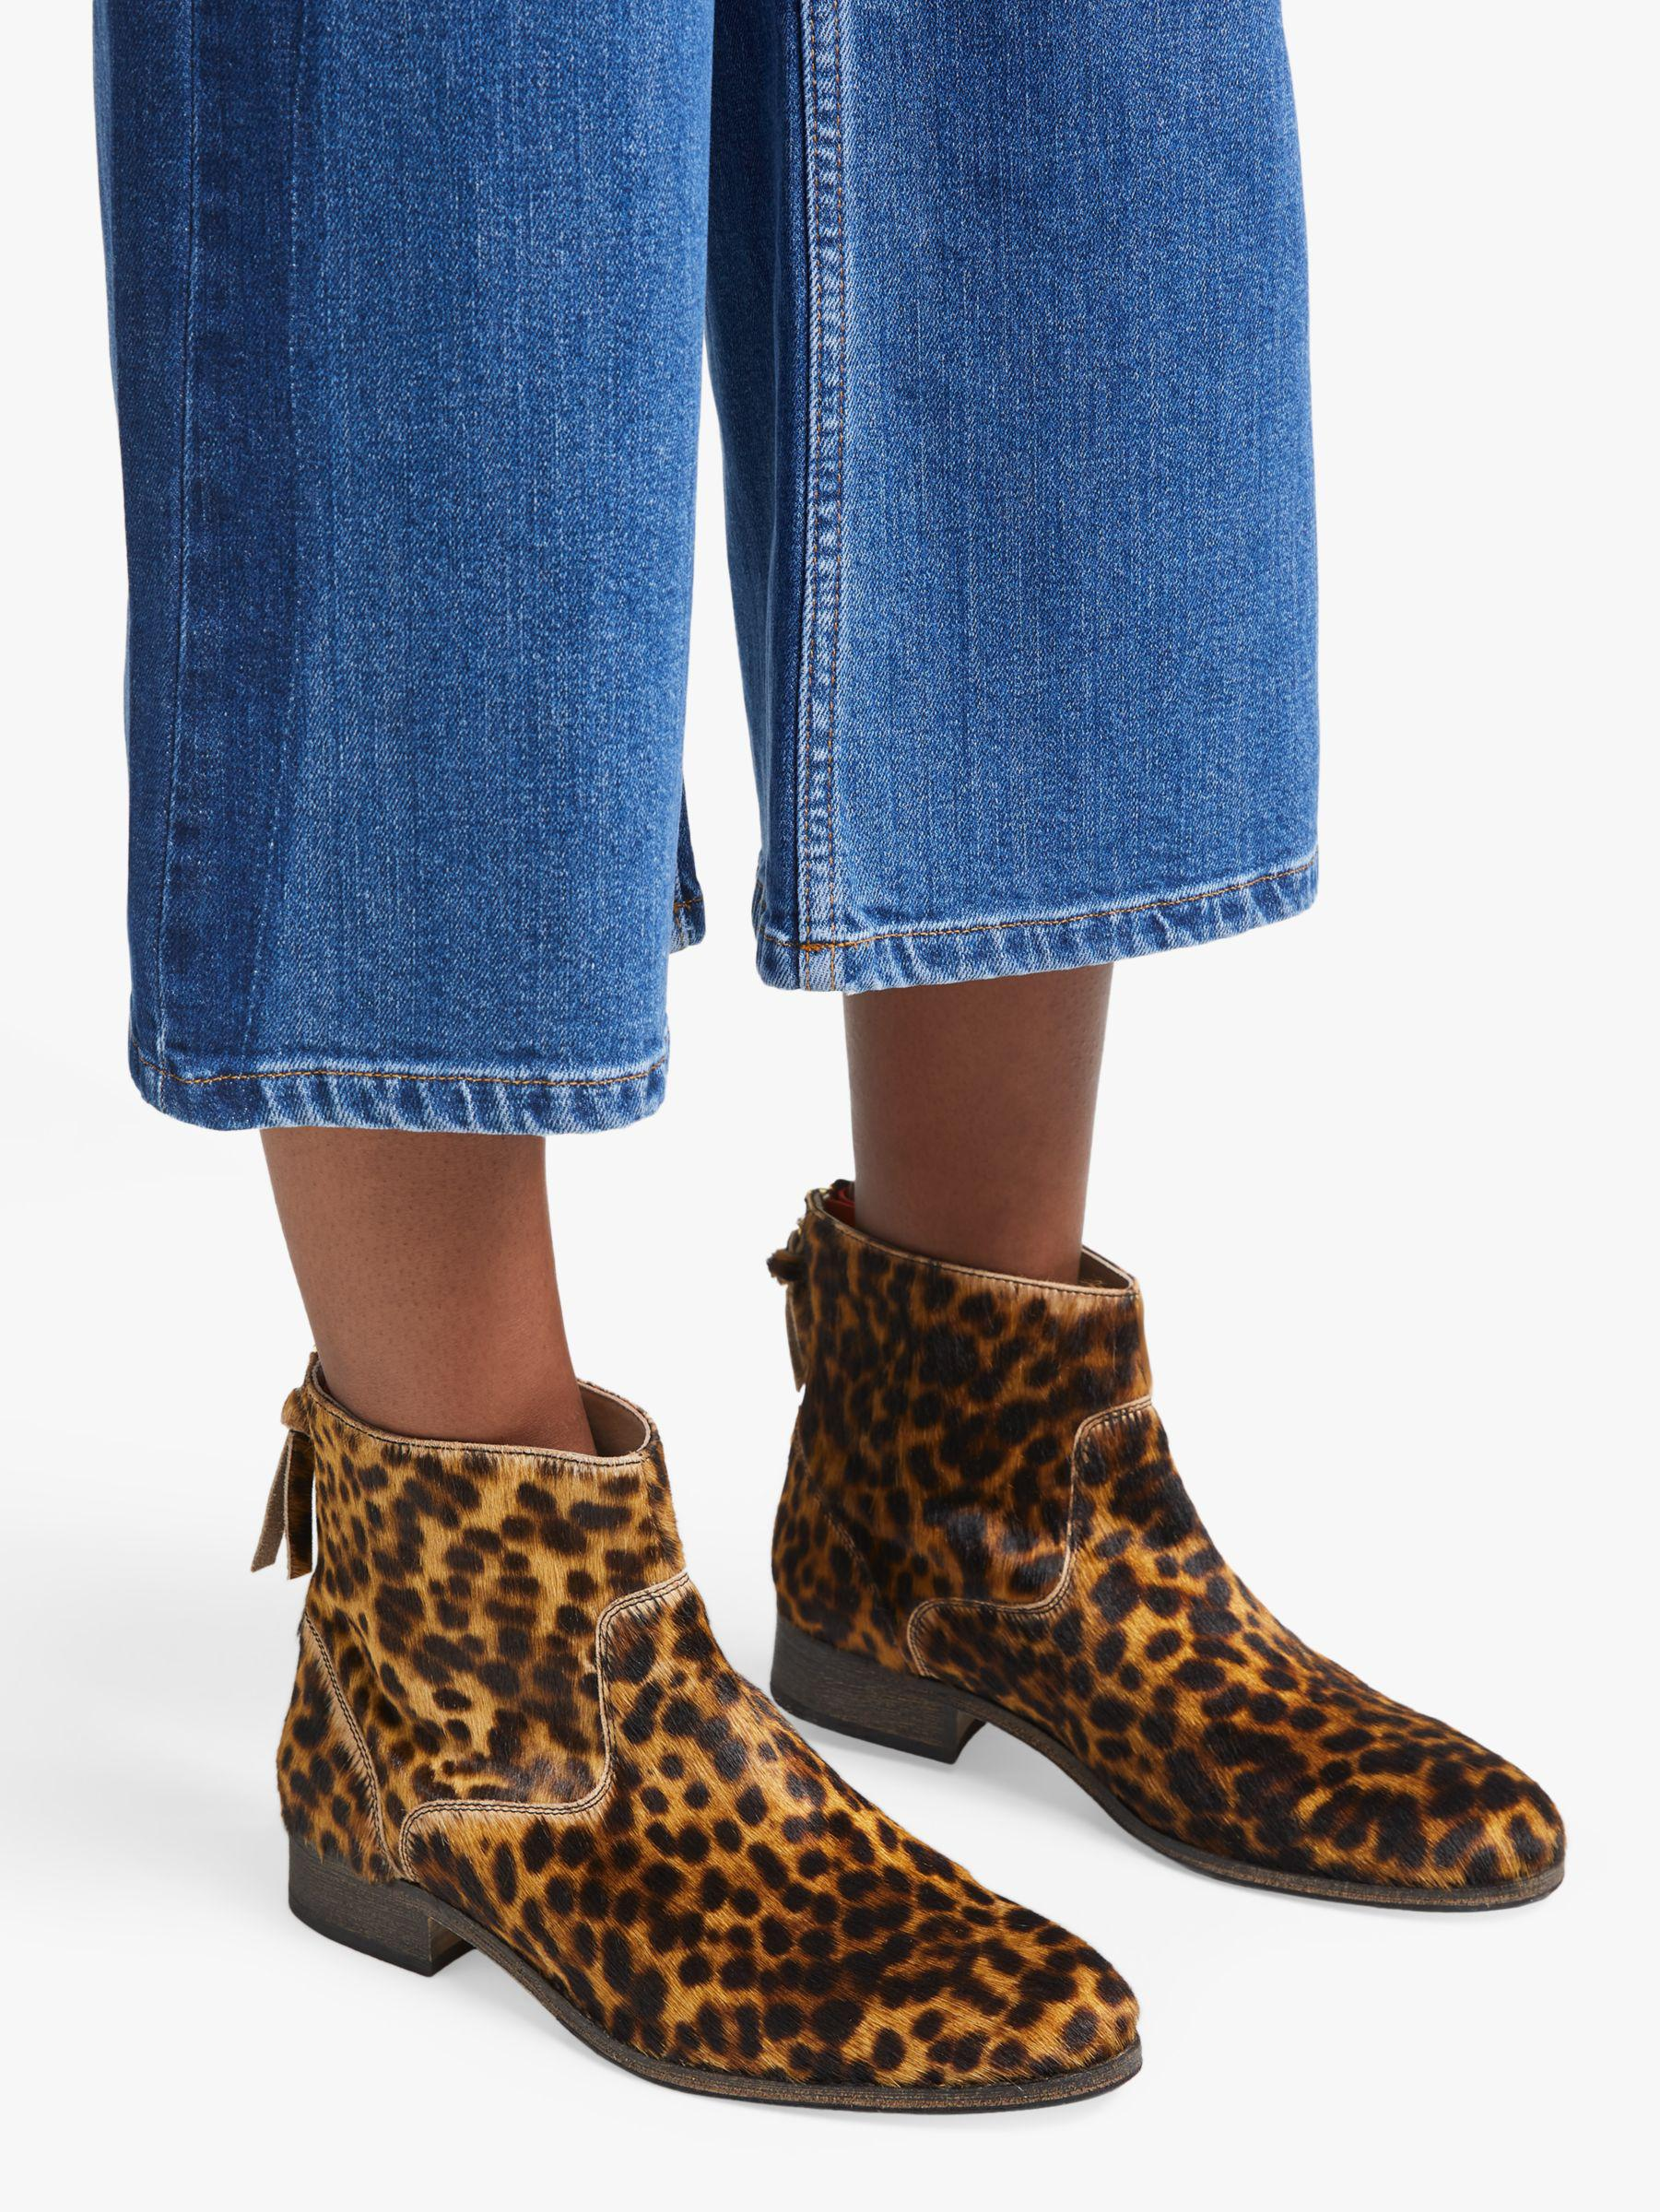 eea9c015cd8 Boden Kingham Ankle Boots in Brown - Save 30% - Lyst